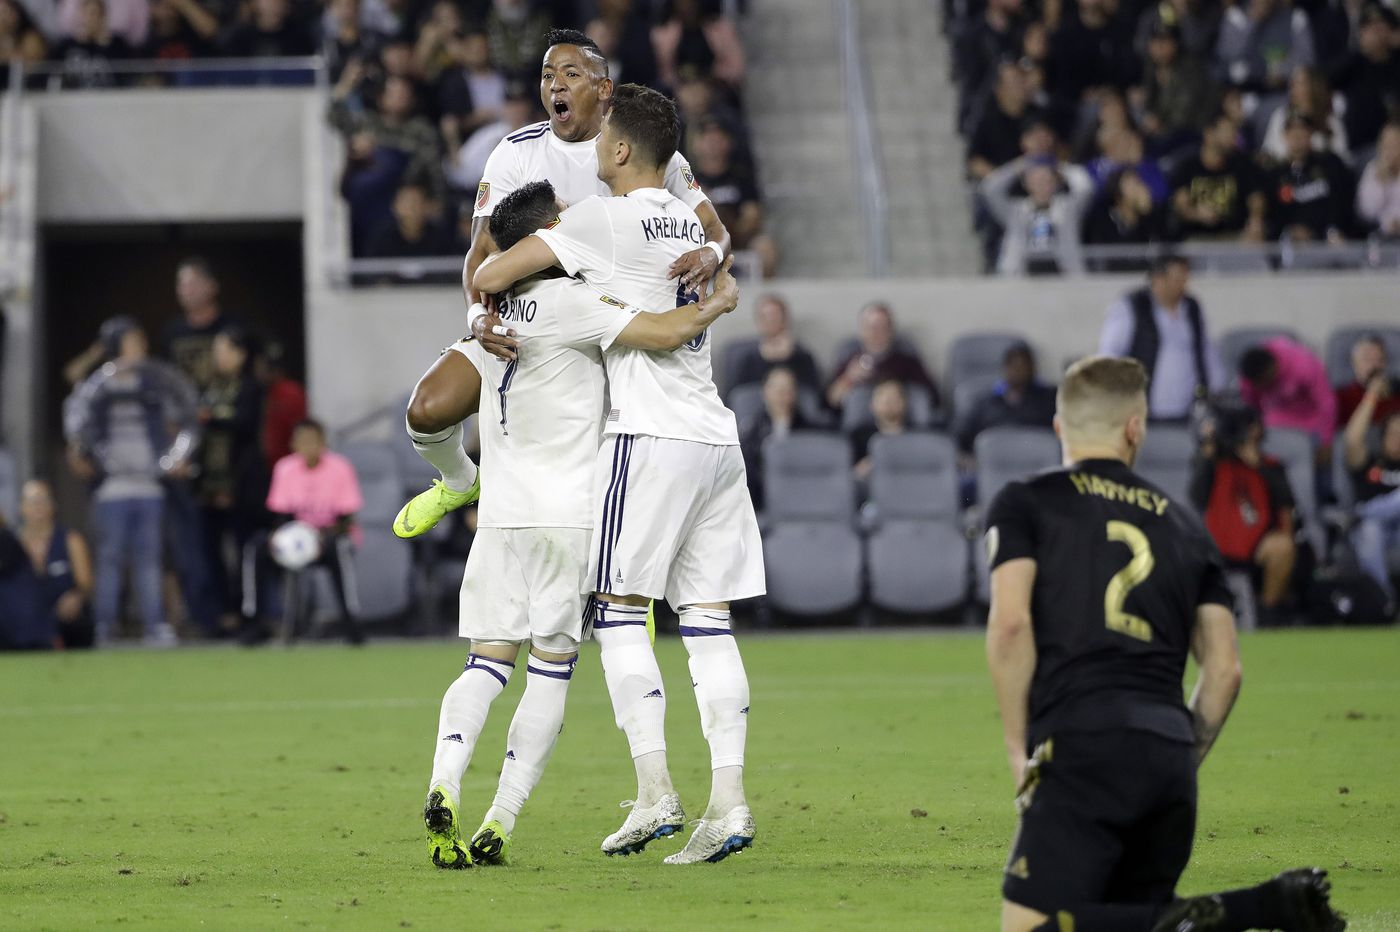 Real Salt Lake upsets LAFC in first round of MLS playoffs